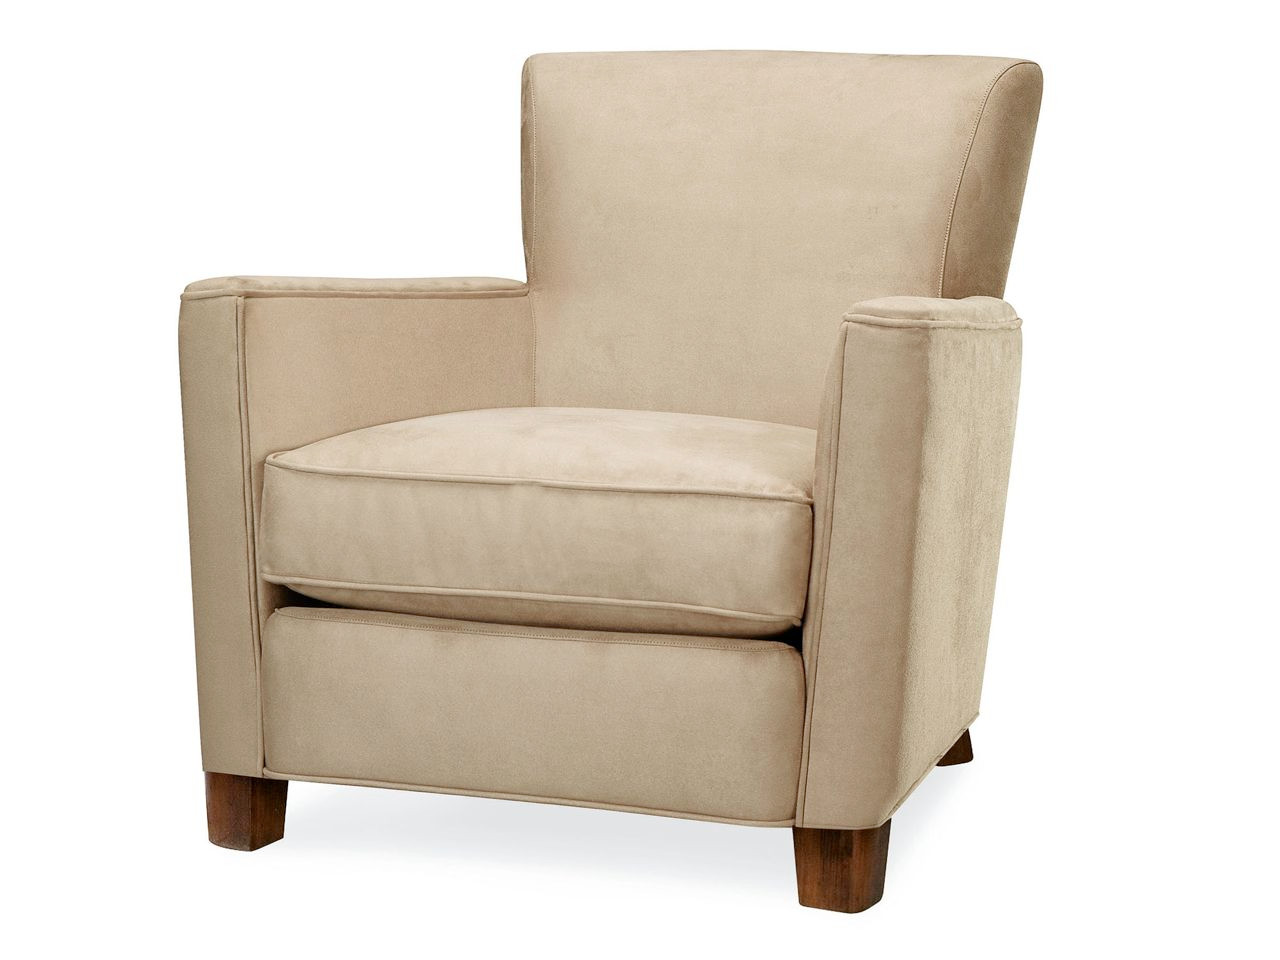 Jason Chair Armchairs Living Room Chairs Accent Chairs Arm